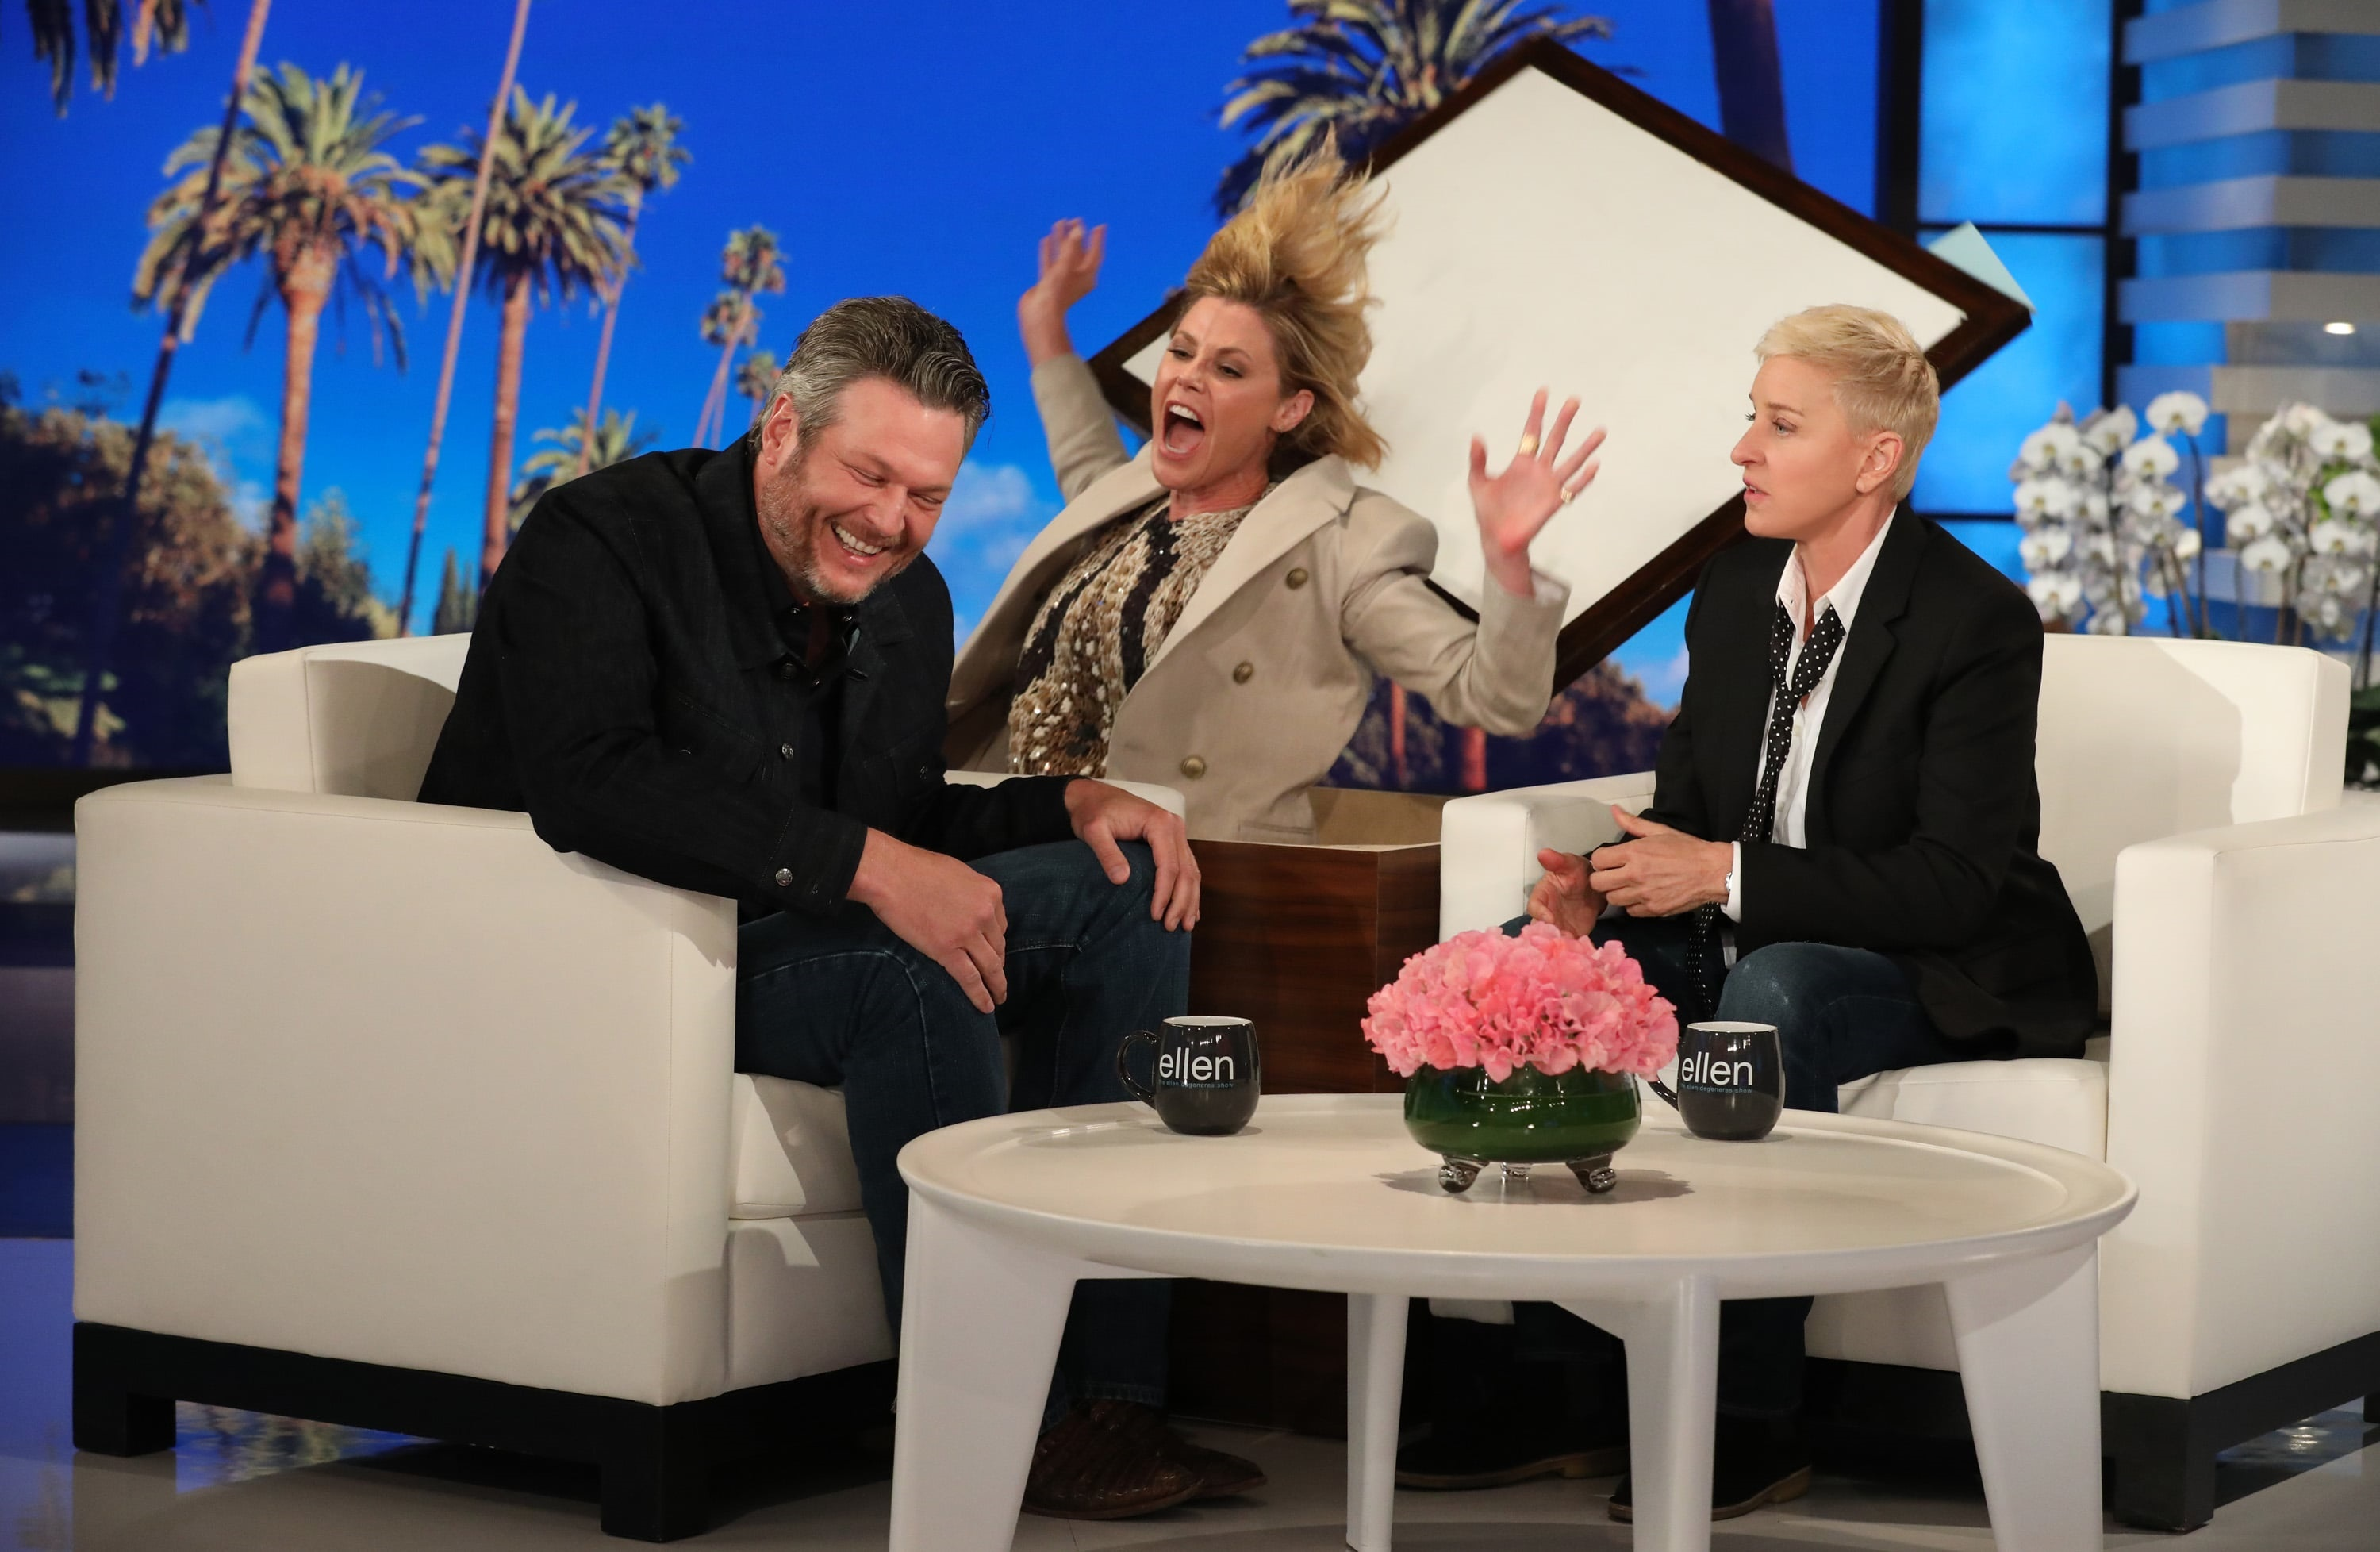 Sensational Blake Shelton Gets Spooked By Julie Bowen On The Ellen Show Gamerscity Chair Design For Home Gamerscityorg